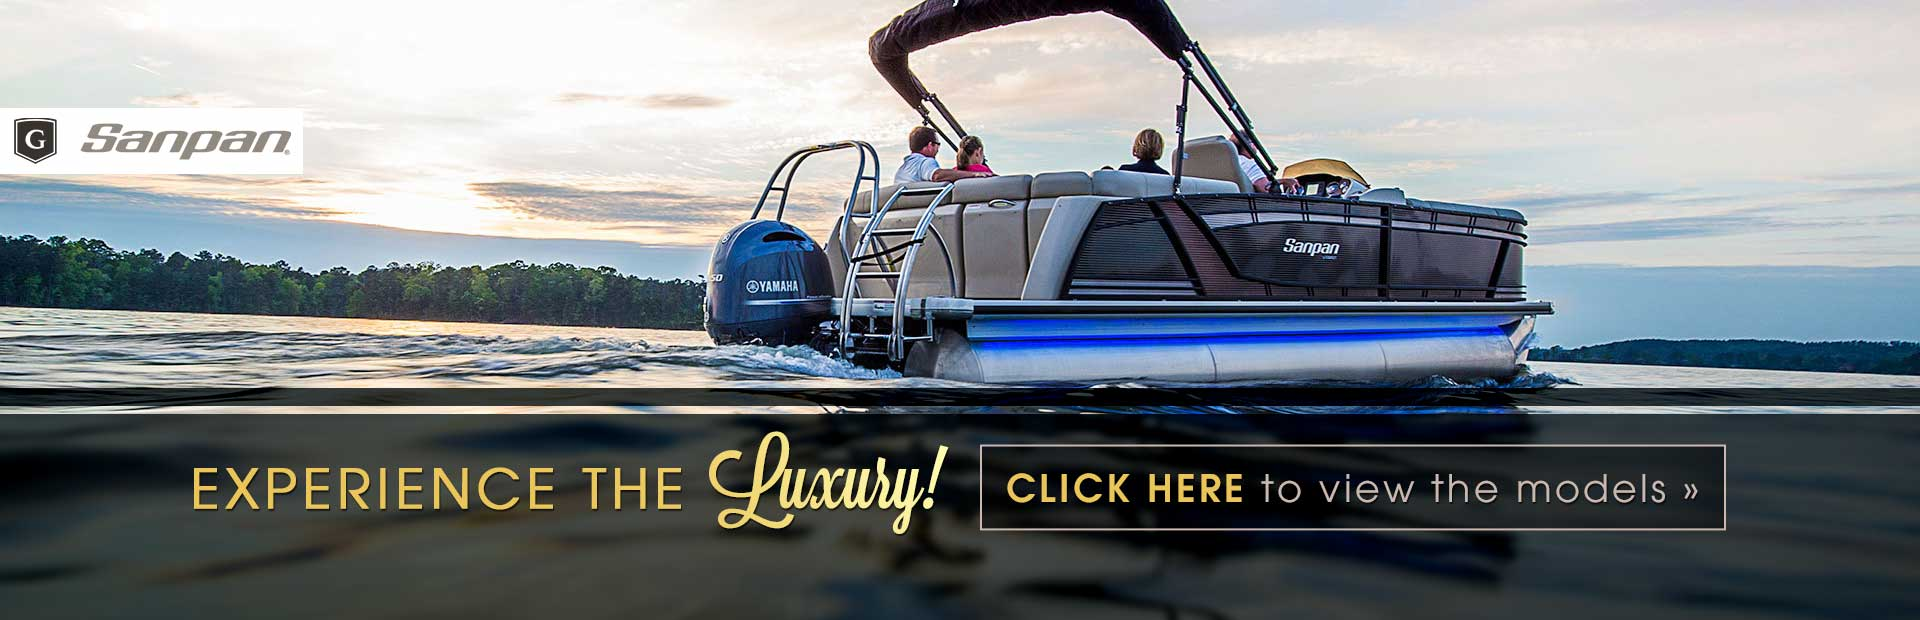 Sanpan Pontoons: Click here to view the models.